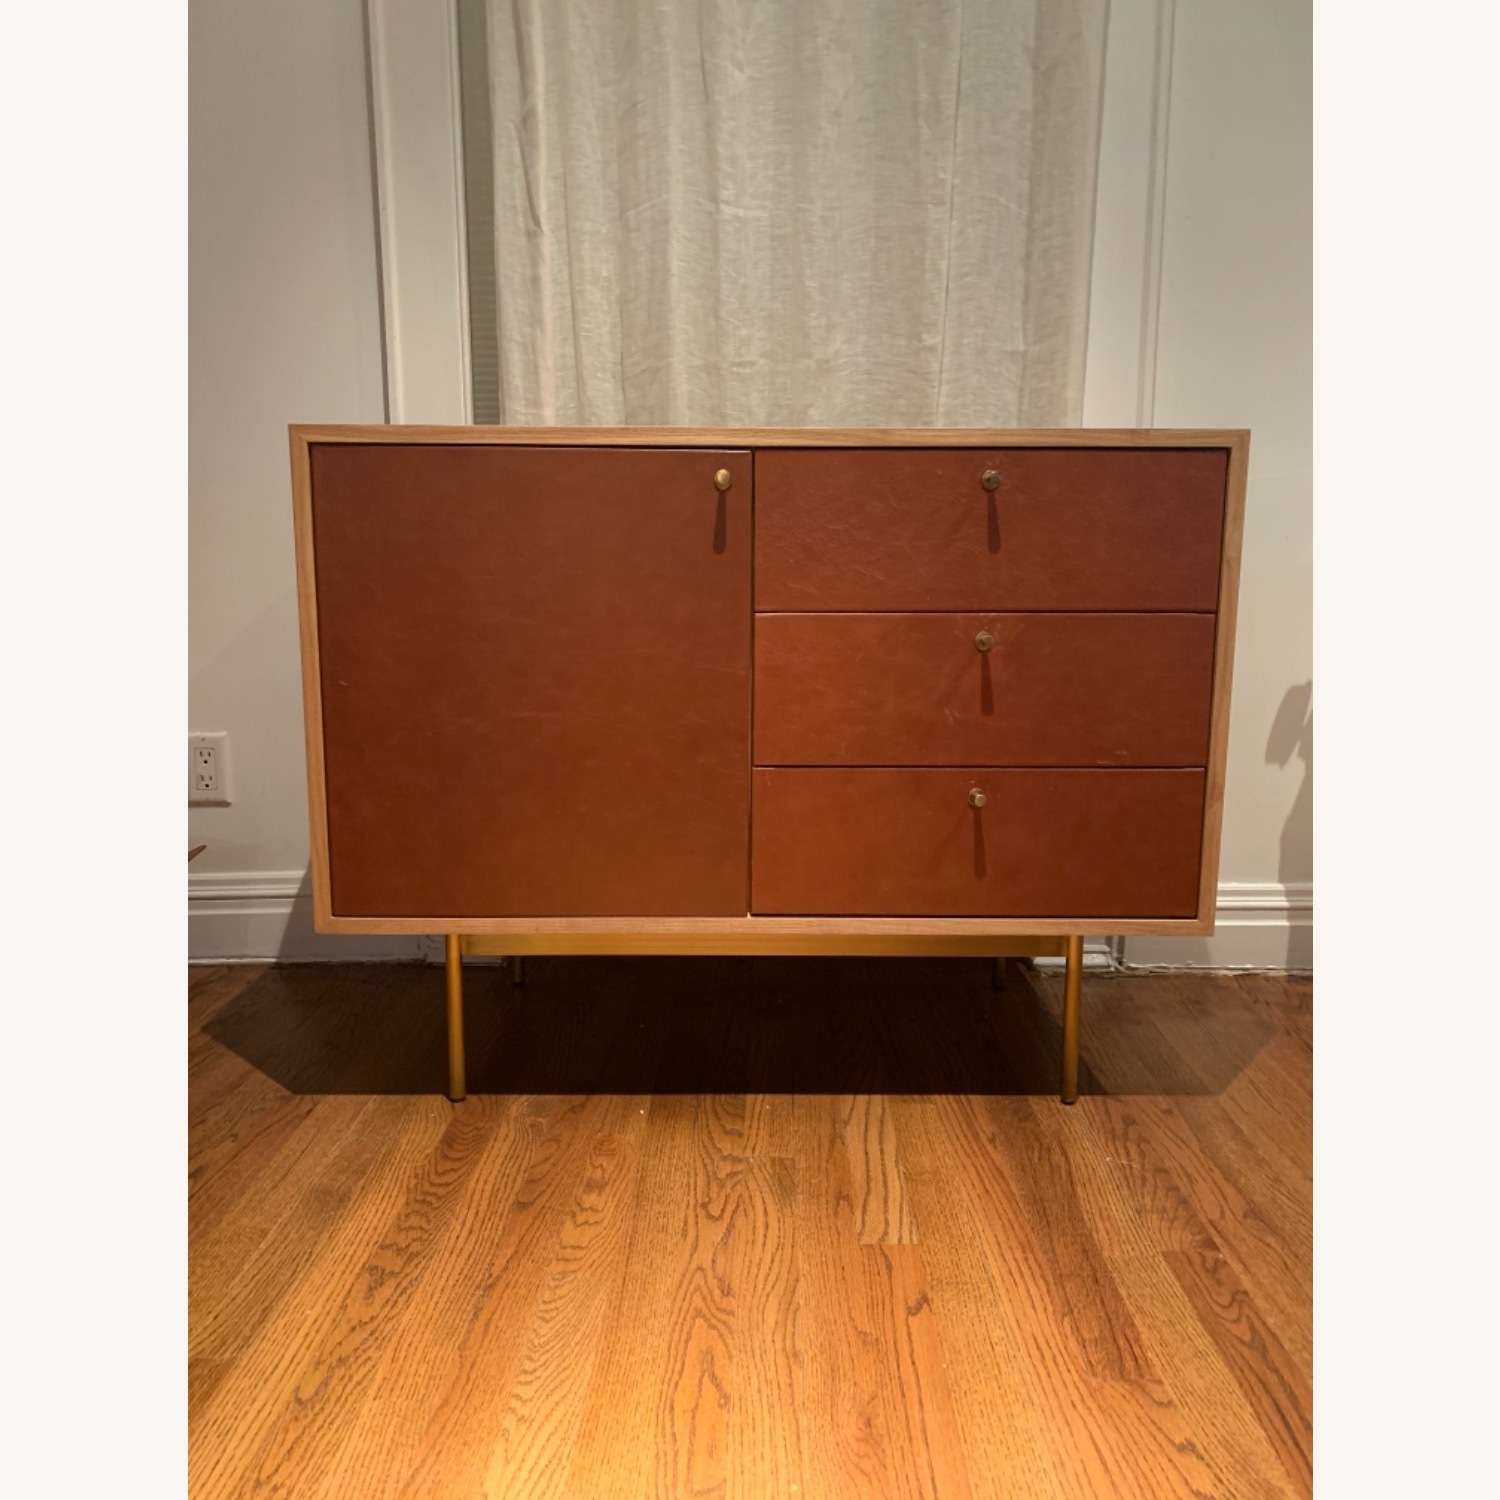 West Elm Michael Robbins Leather Front Sideboard - image-1